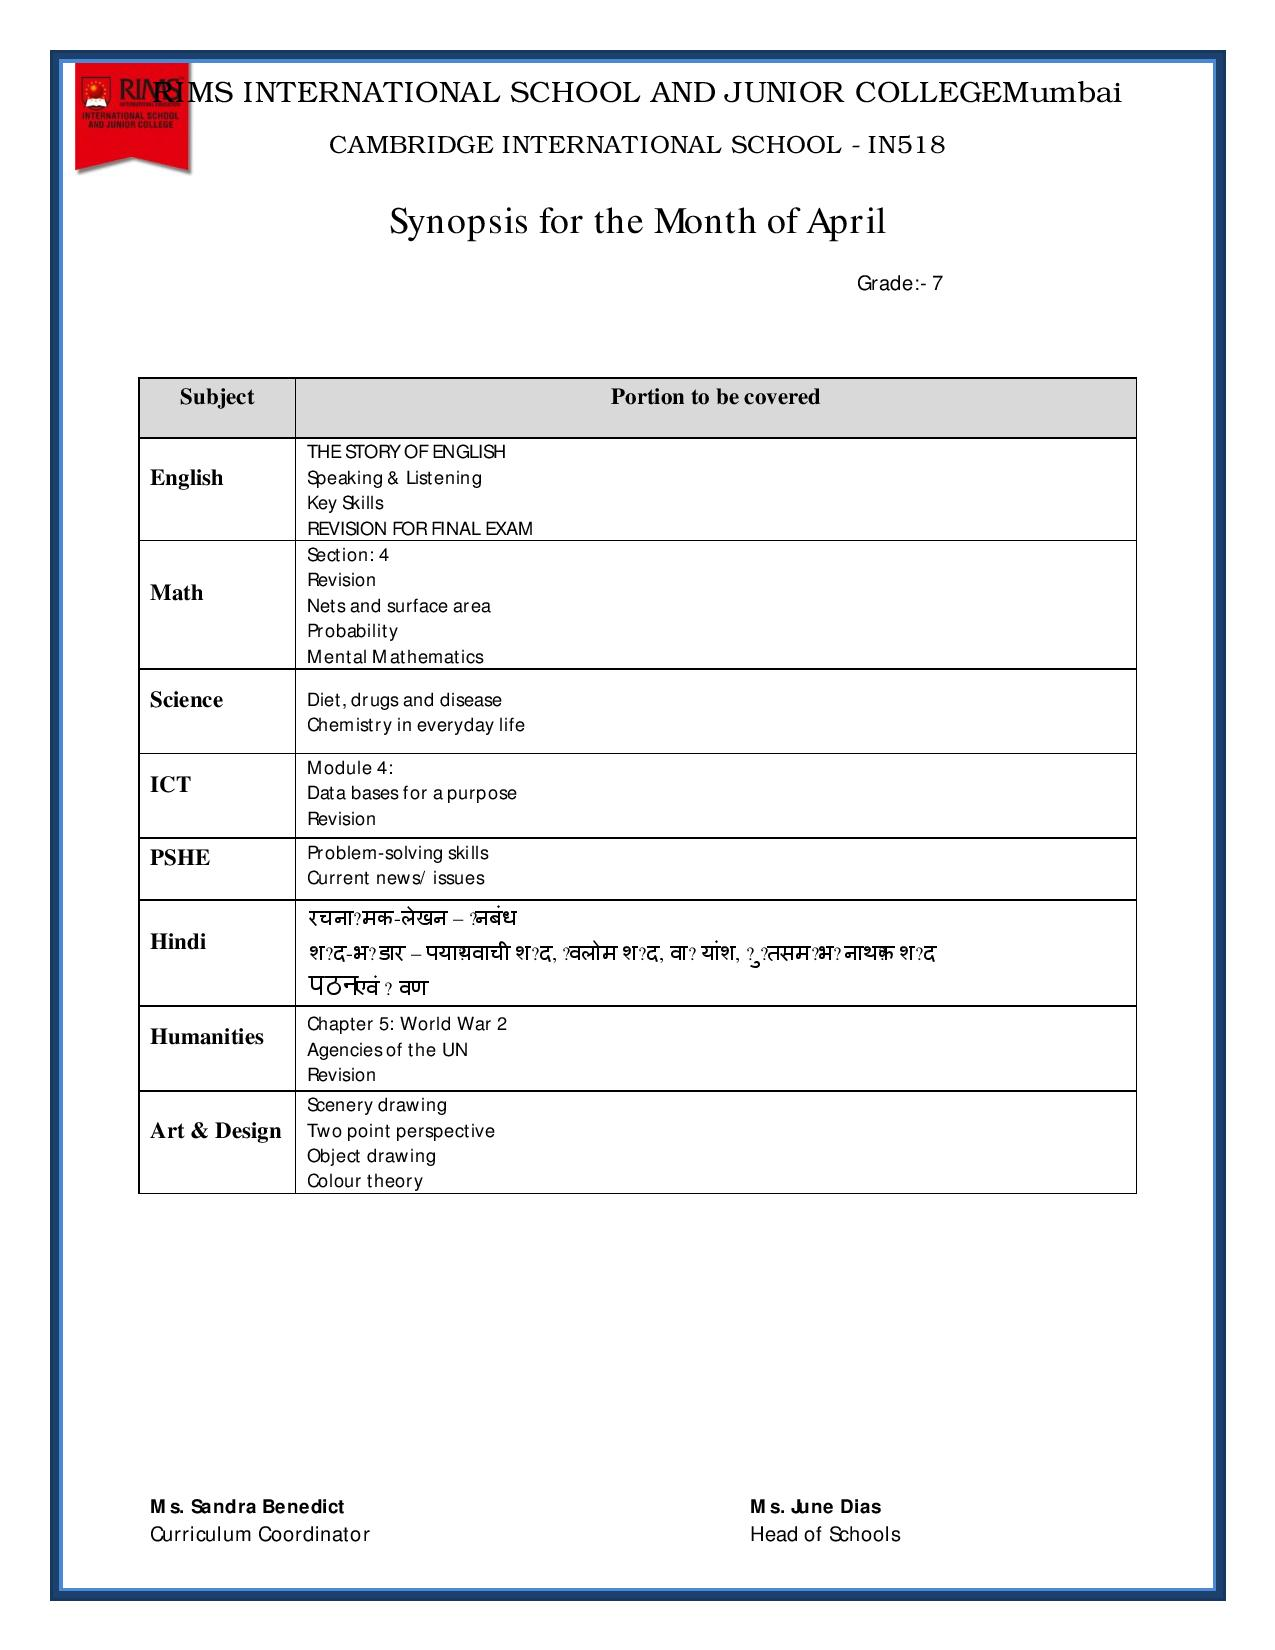 Synopsis for the Month of April – Grade 7